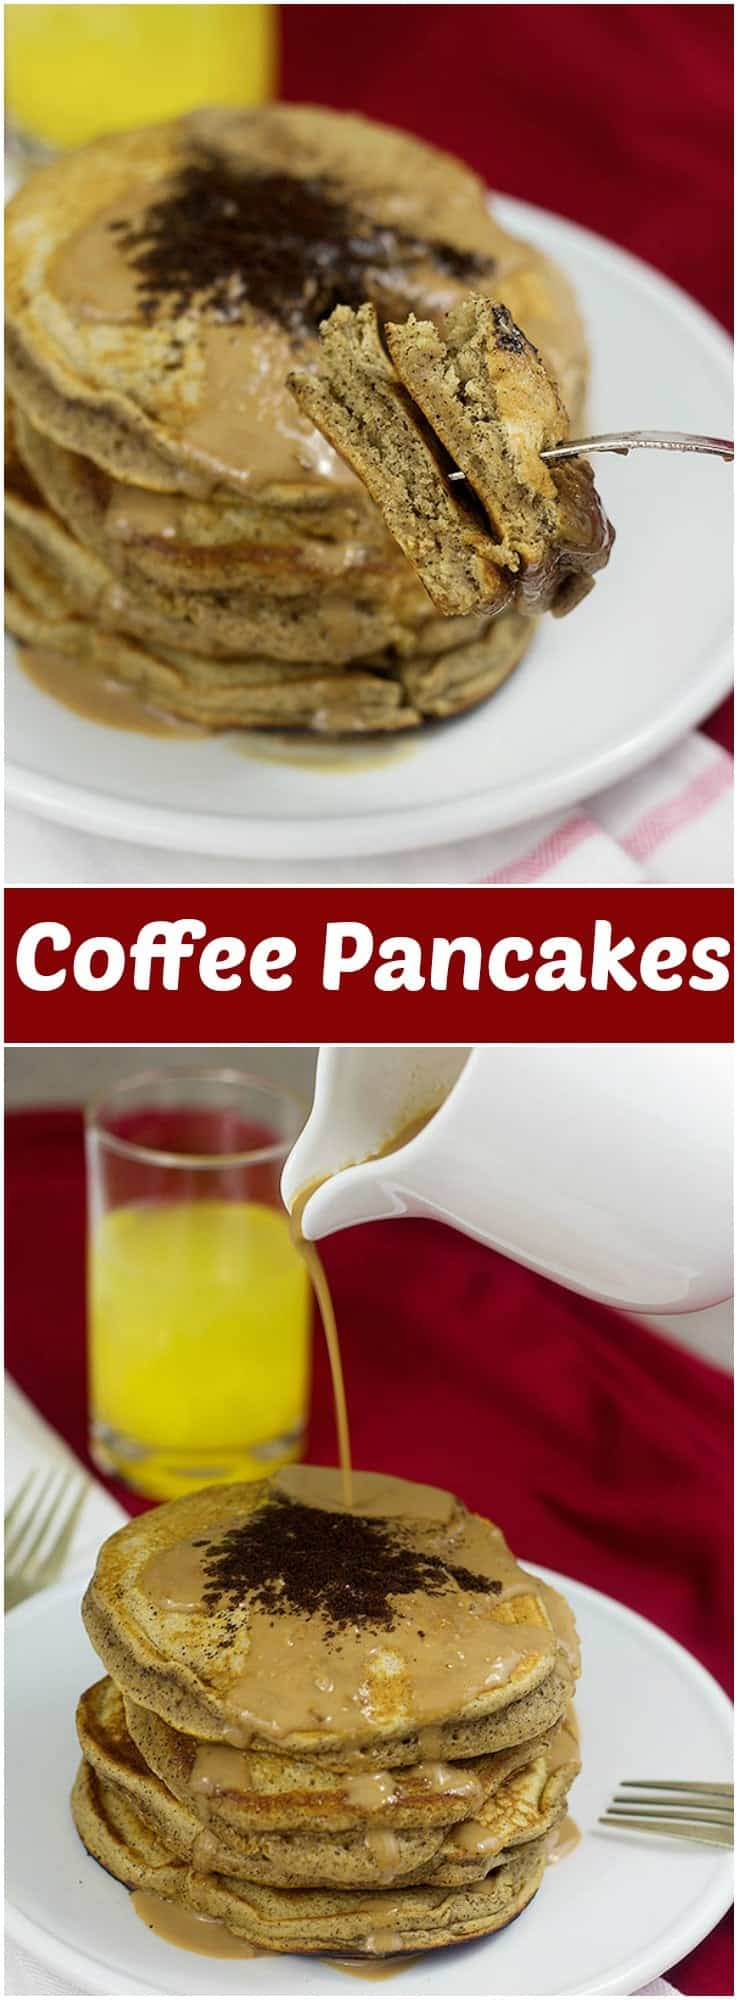 Start your morning right with these coffee pancakes filled with delicious coffee and served with a coffee and creamer syrup. Talk about a perfect morning!